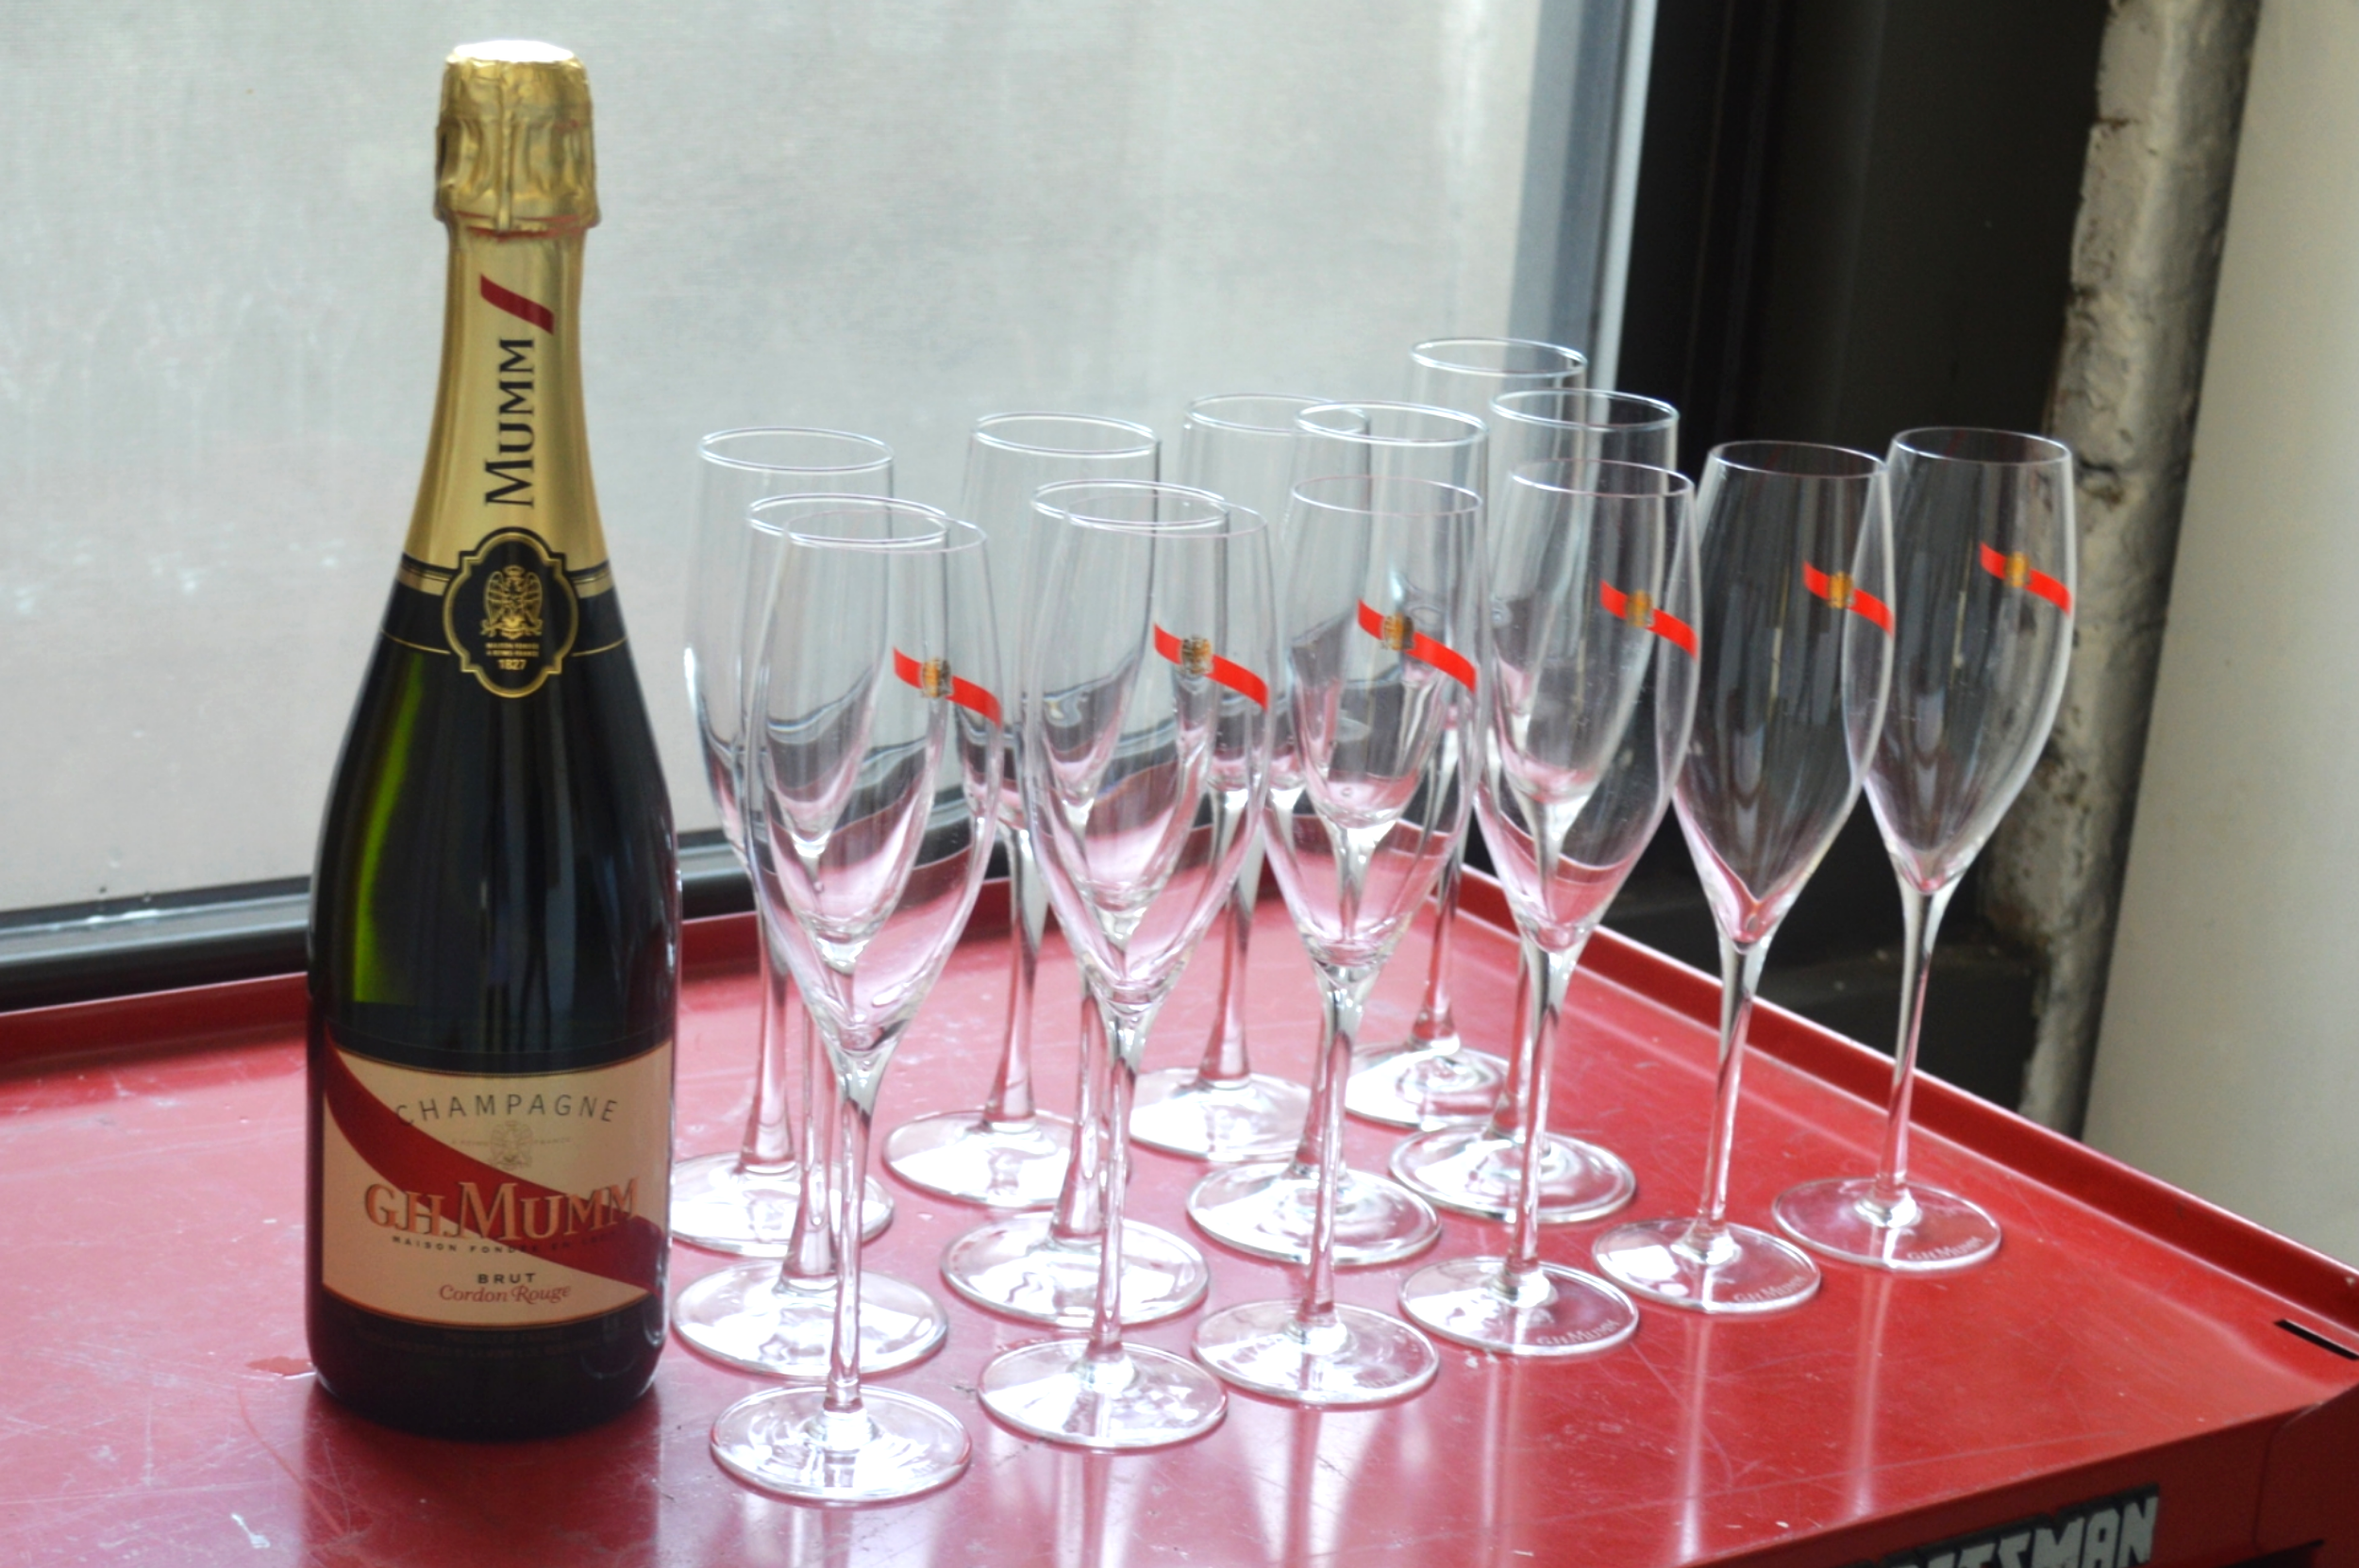 GH Mumm champagne to welcome guests at the event